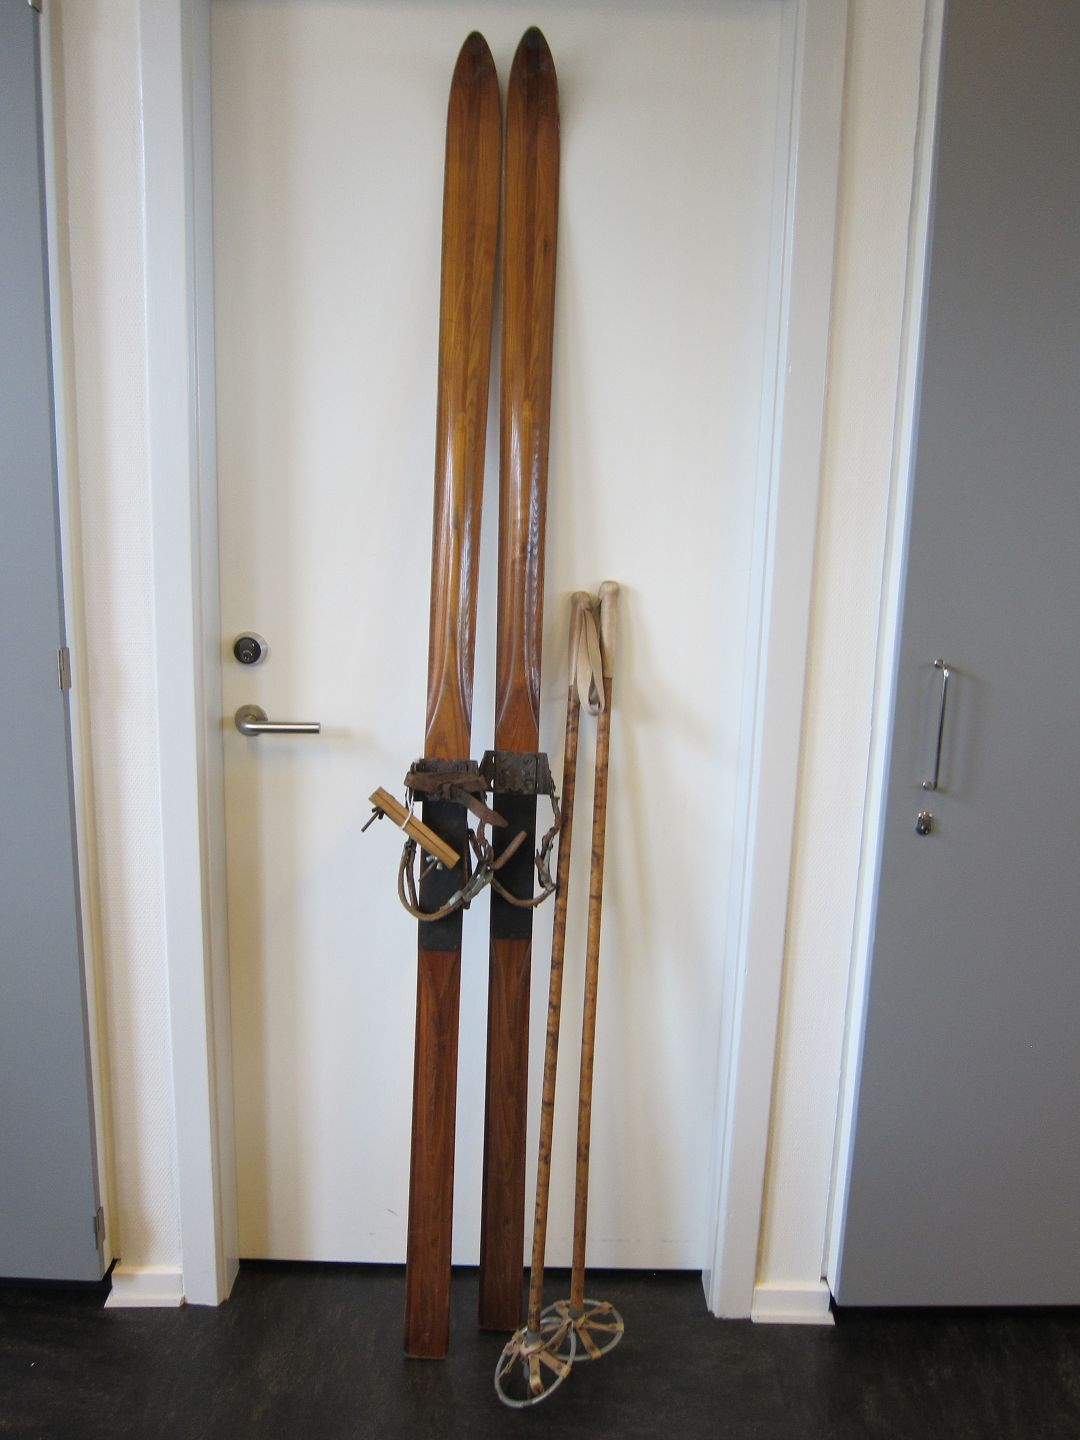 Cross Country Ski Made Of Wood Old Cross Country Ski Made Of Wood With Bindings And Ski Sticks Please Take A Look At The Photos L Ski 2m L Sticks